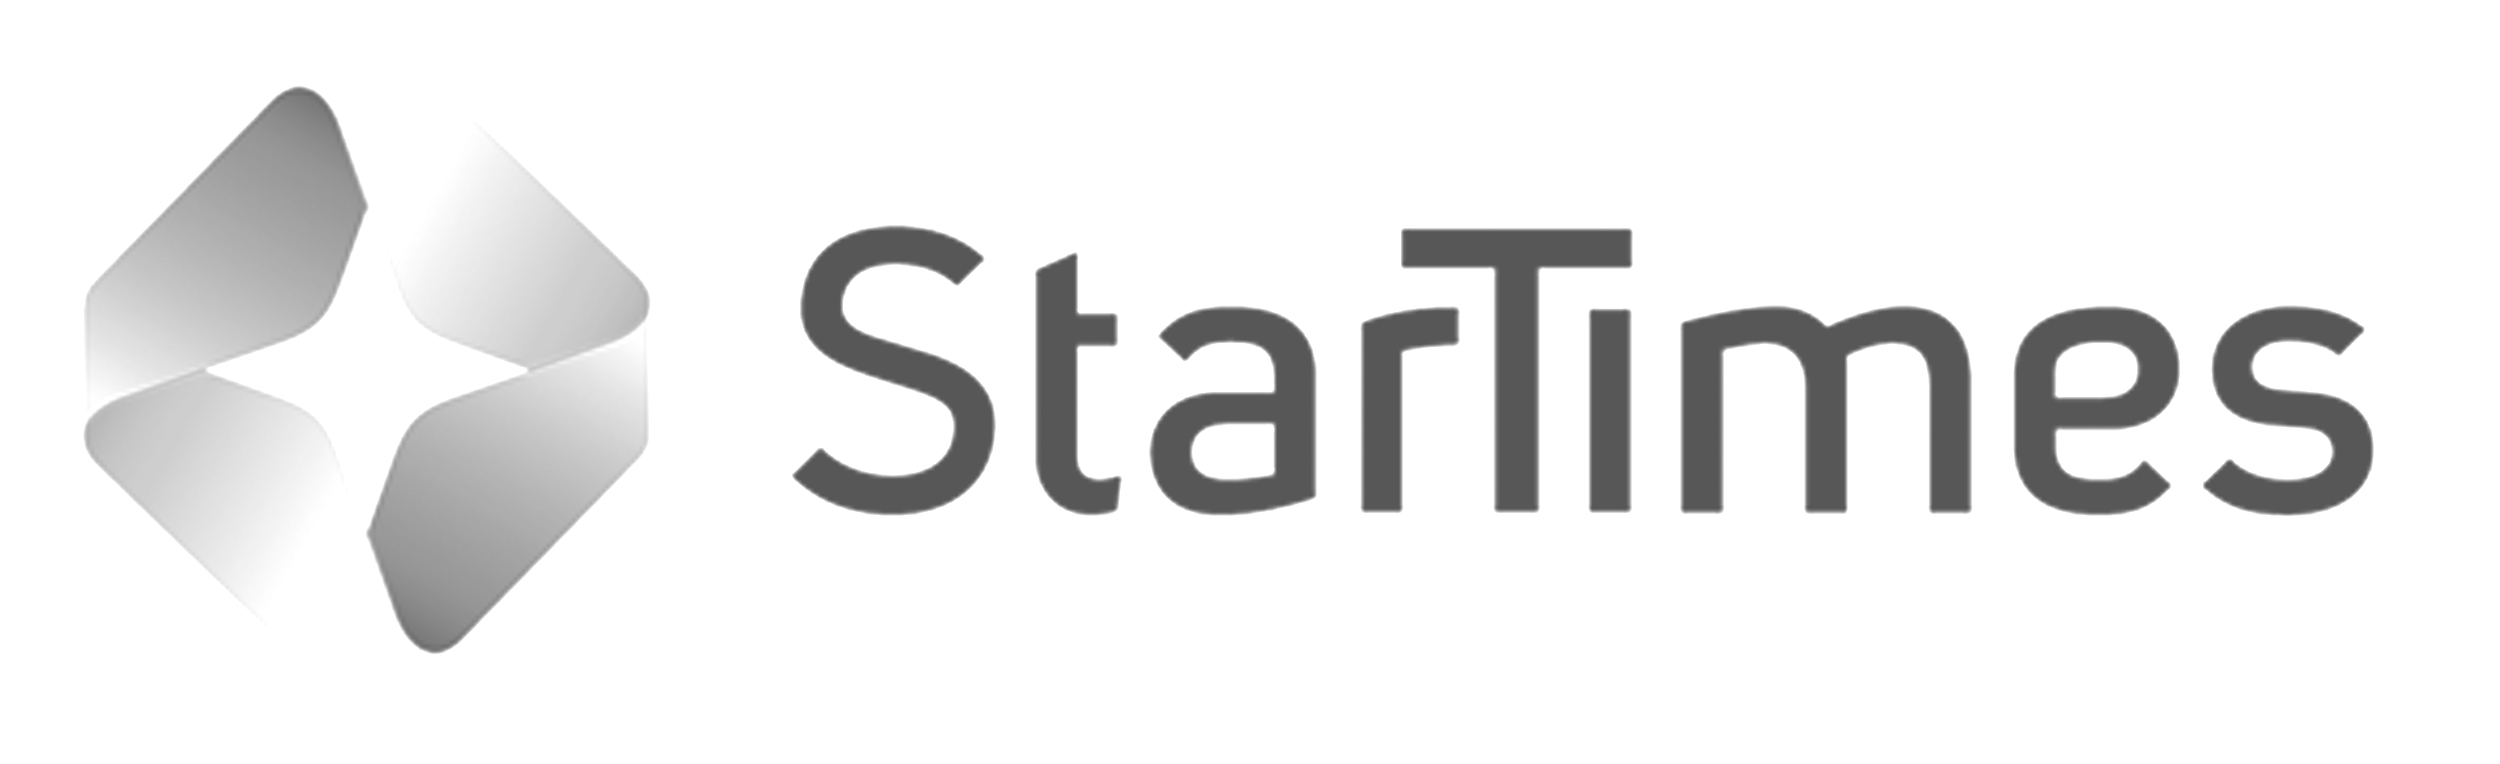 Startimes.png